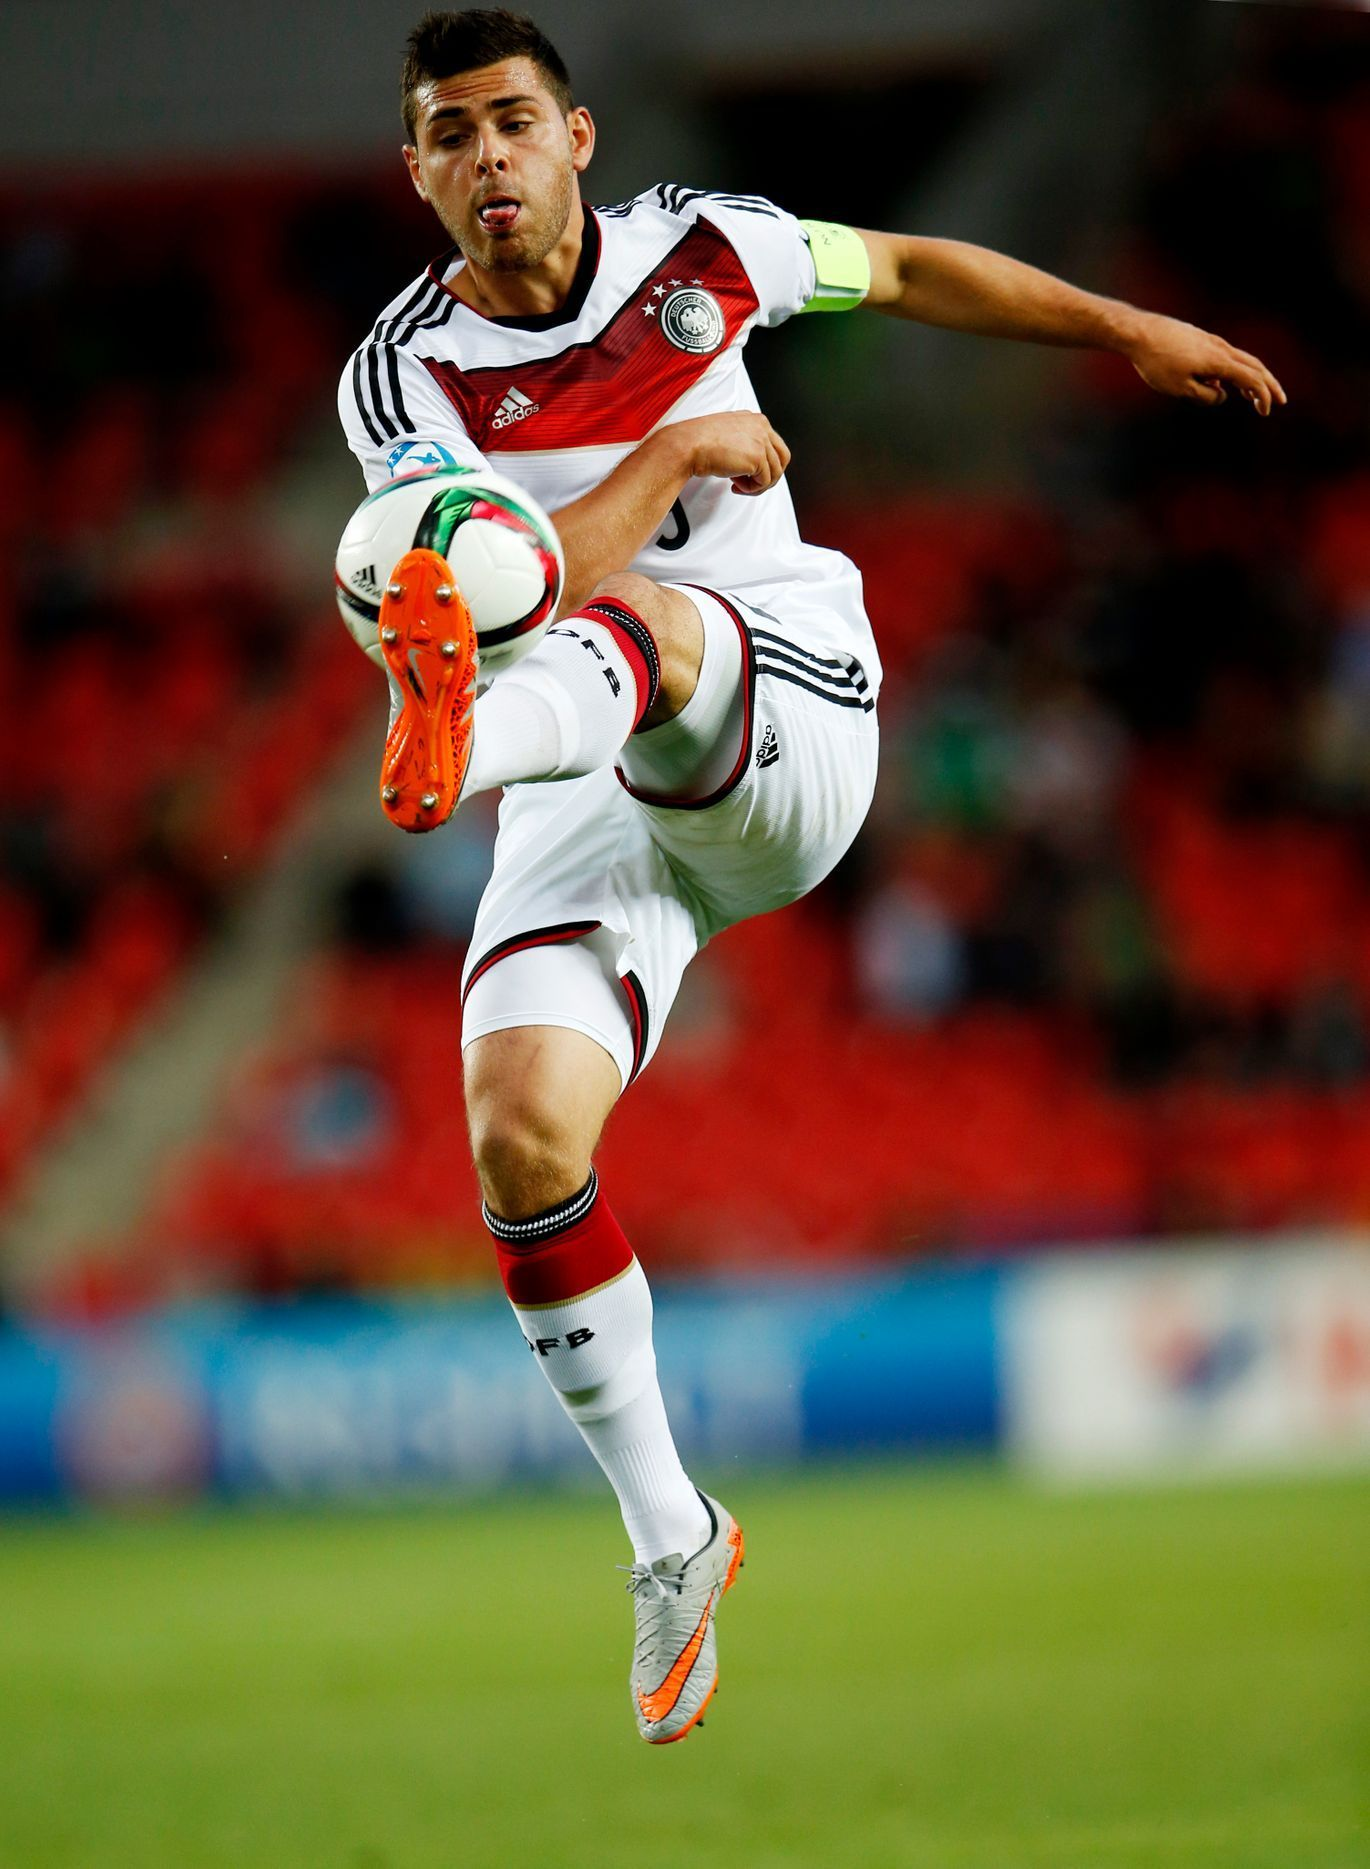 SOC: Germany's Kevin Volland in action